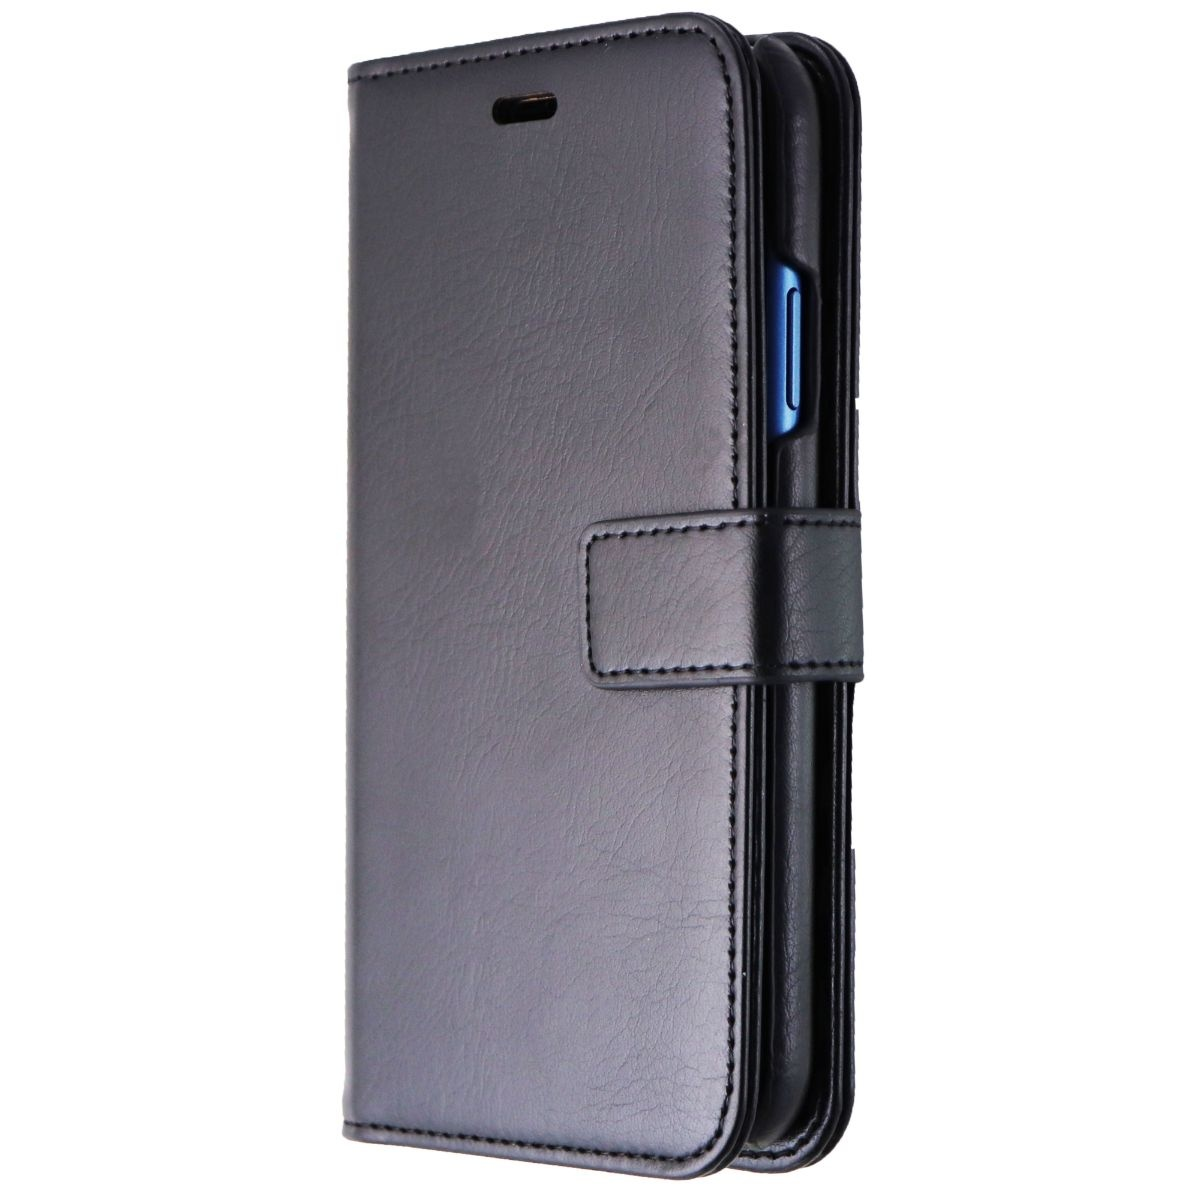 Skech Polo Book Wallet Cover Detachable Case for Apple iPhone XR - Black